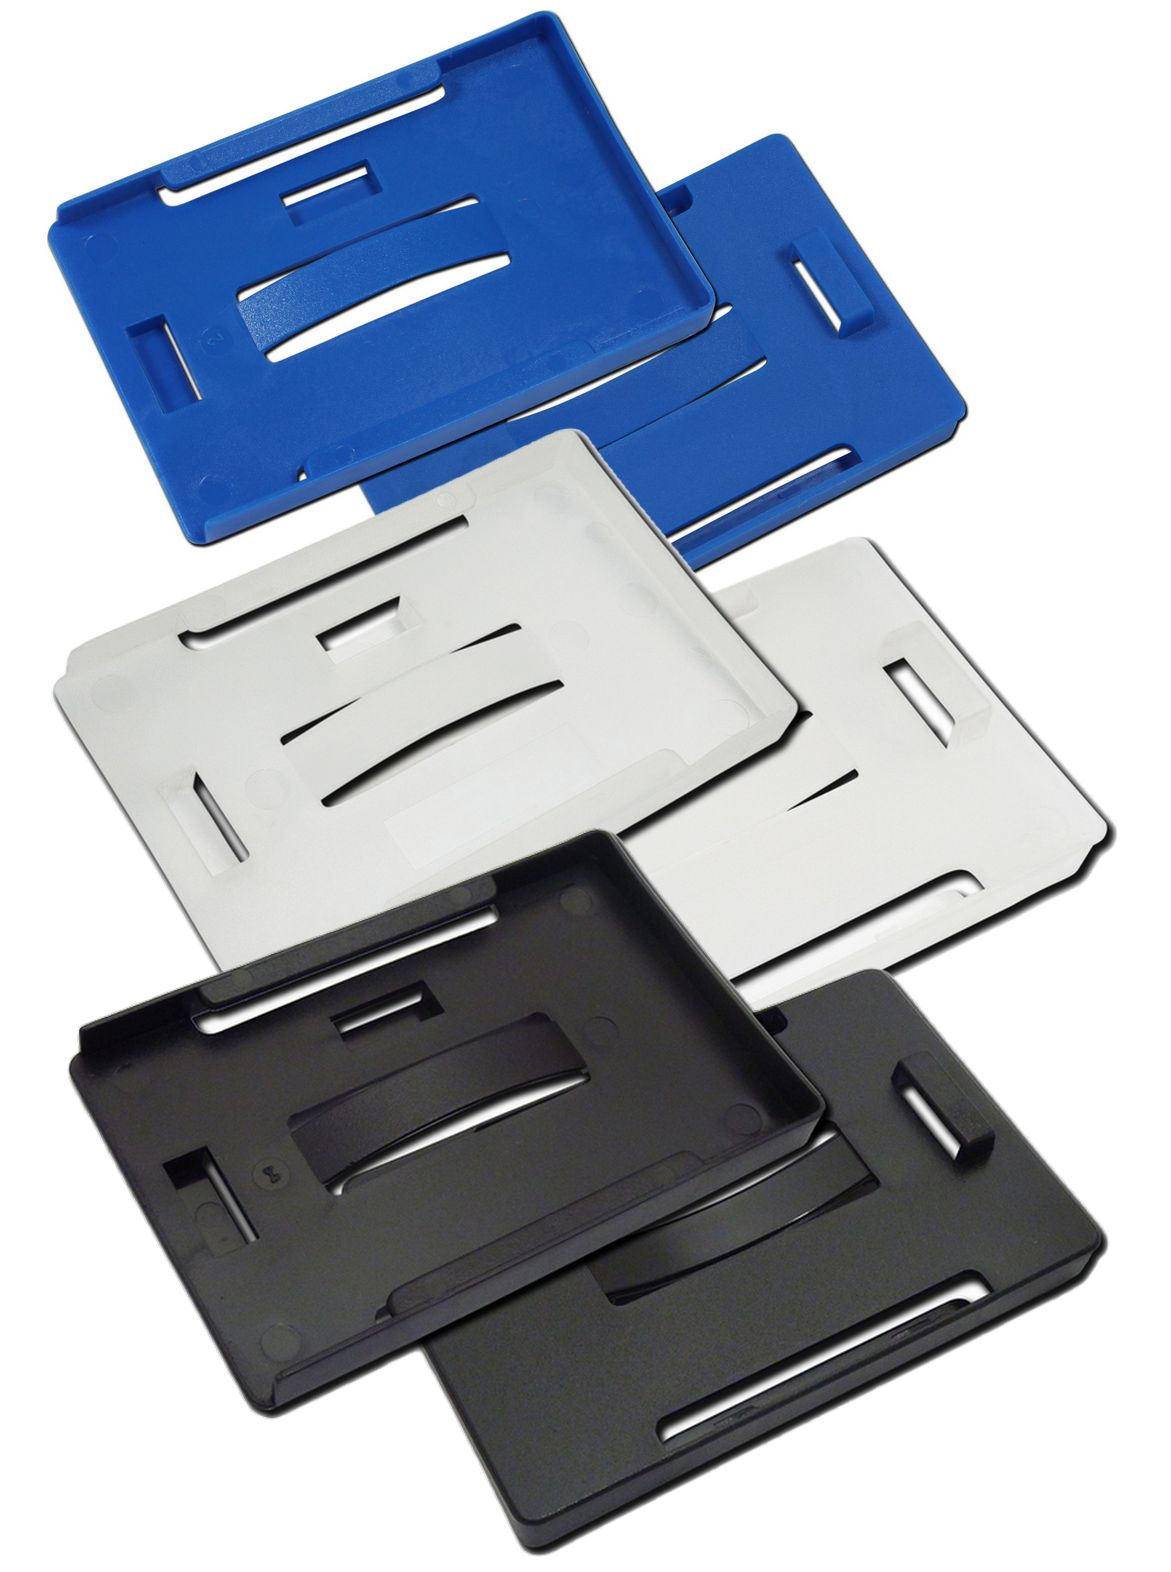 MULTI-CARD ID CARD HOLDER - HORIZONTAL/VERTICAL ALL IN ONE